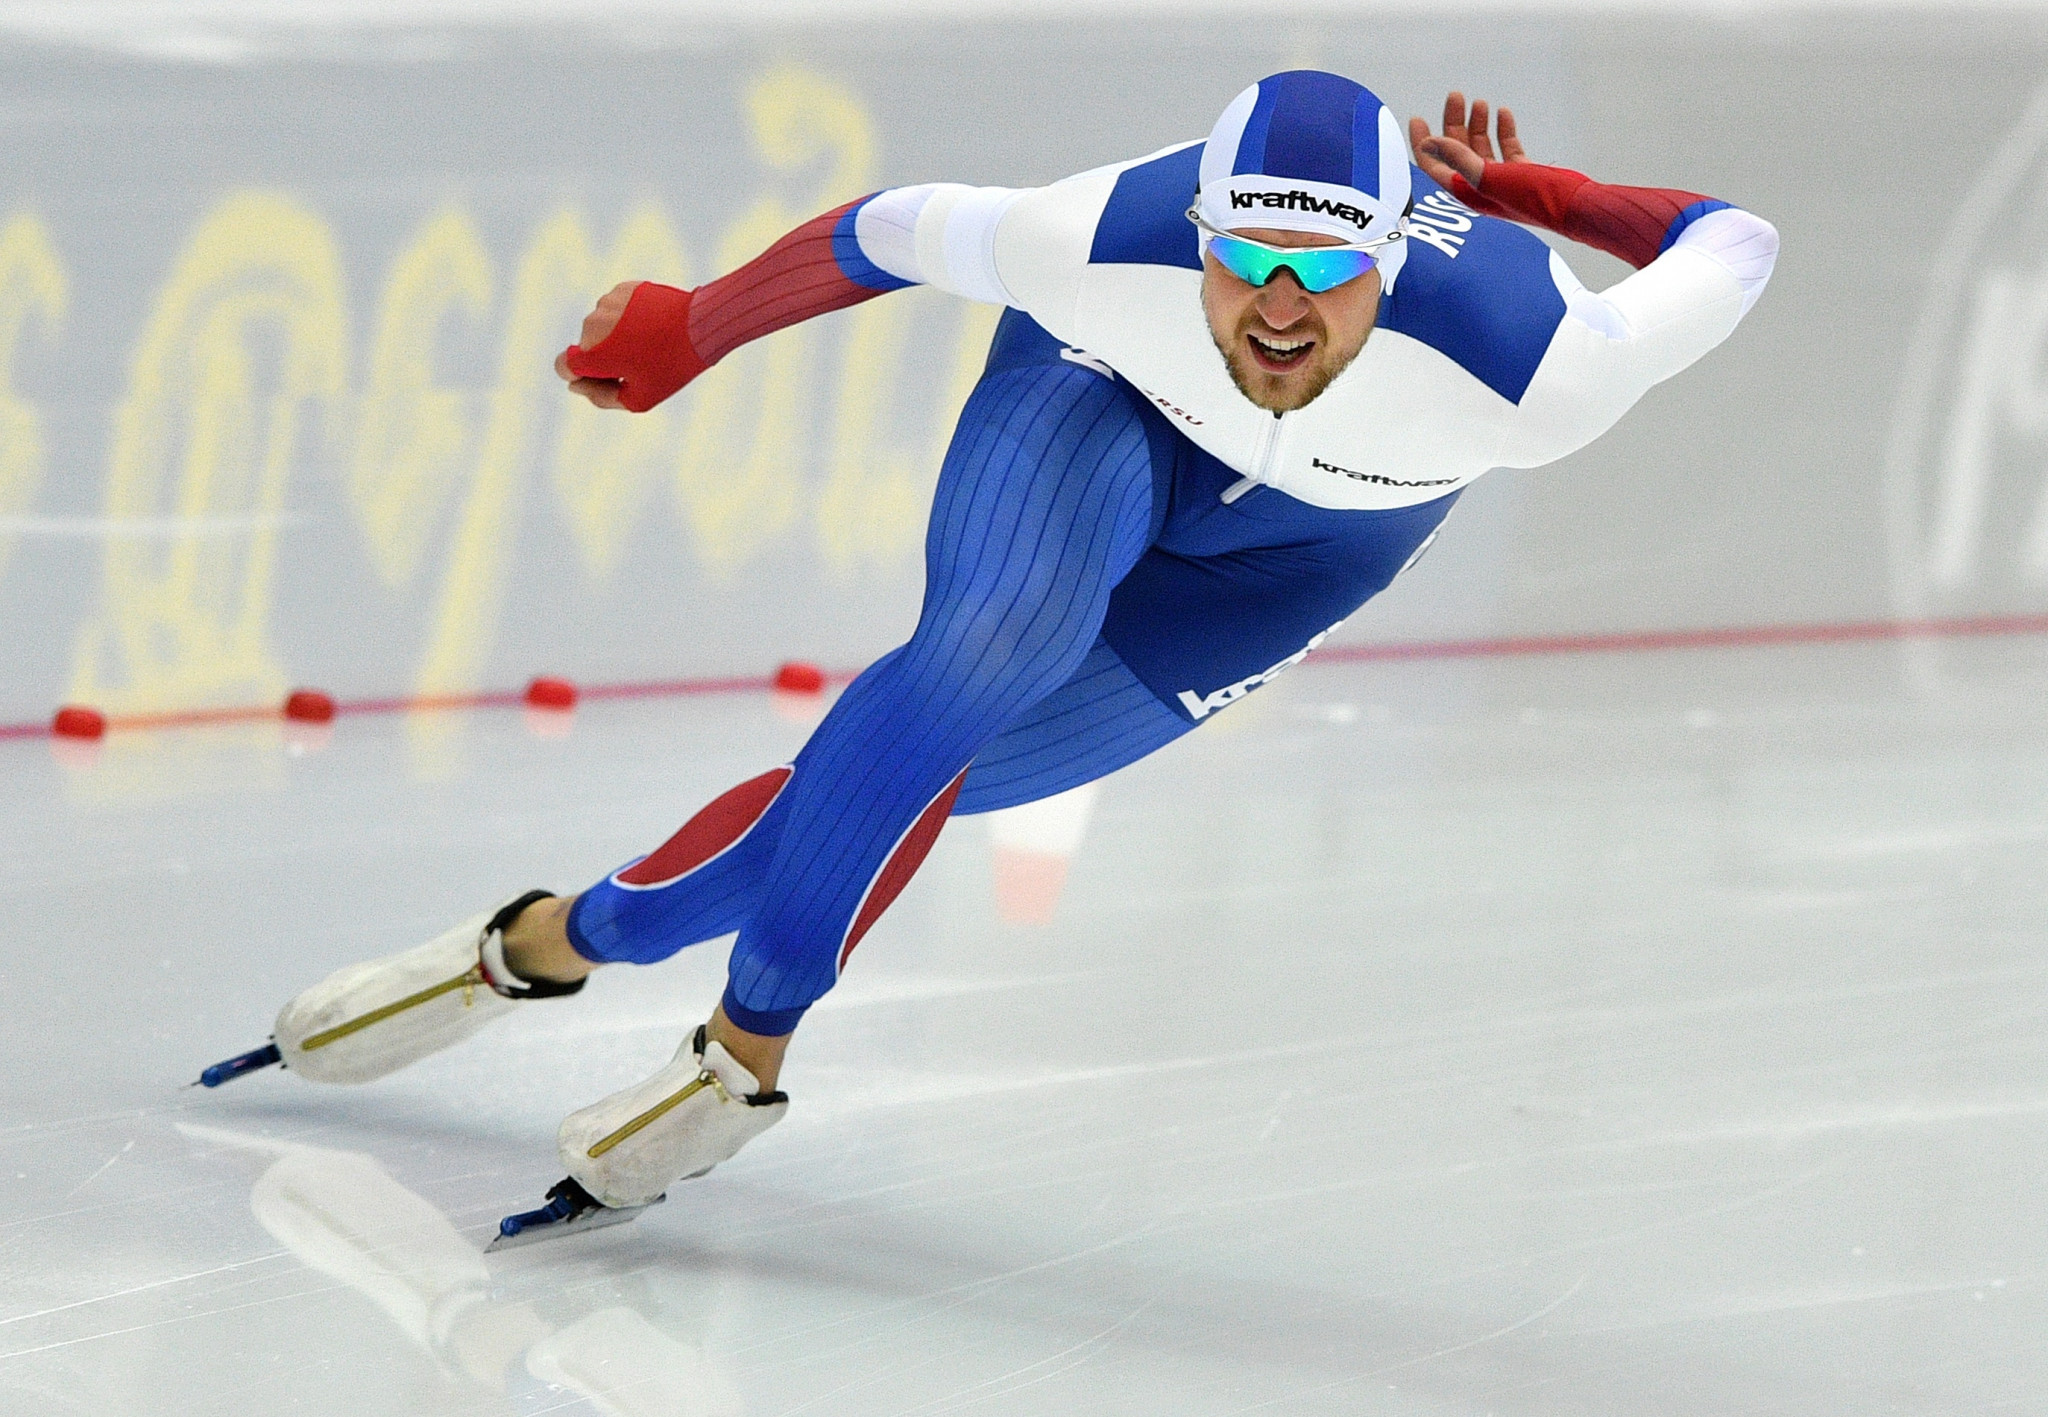 Denis Yuskov is among athletes seemingly now blocked from appearing in Pyeongchang ©Getty Images